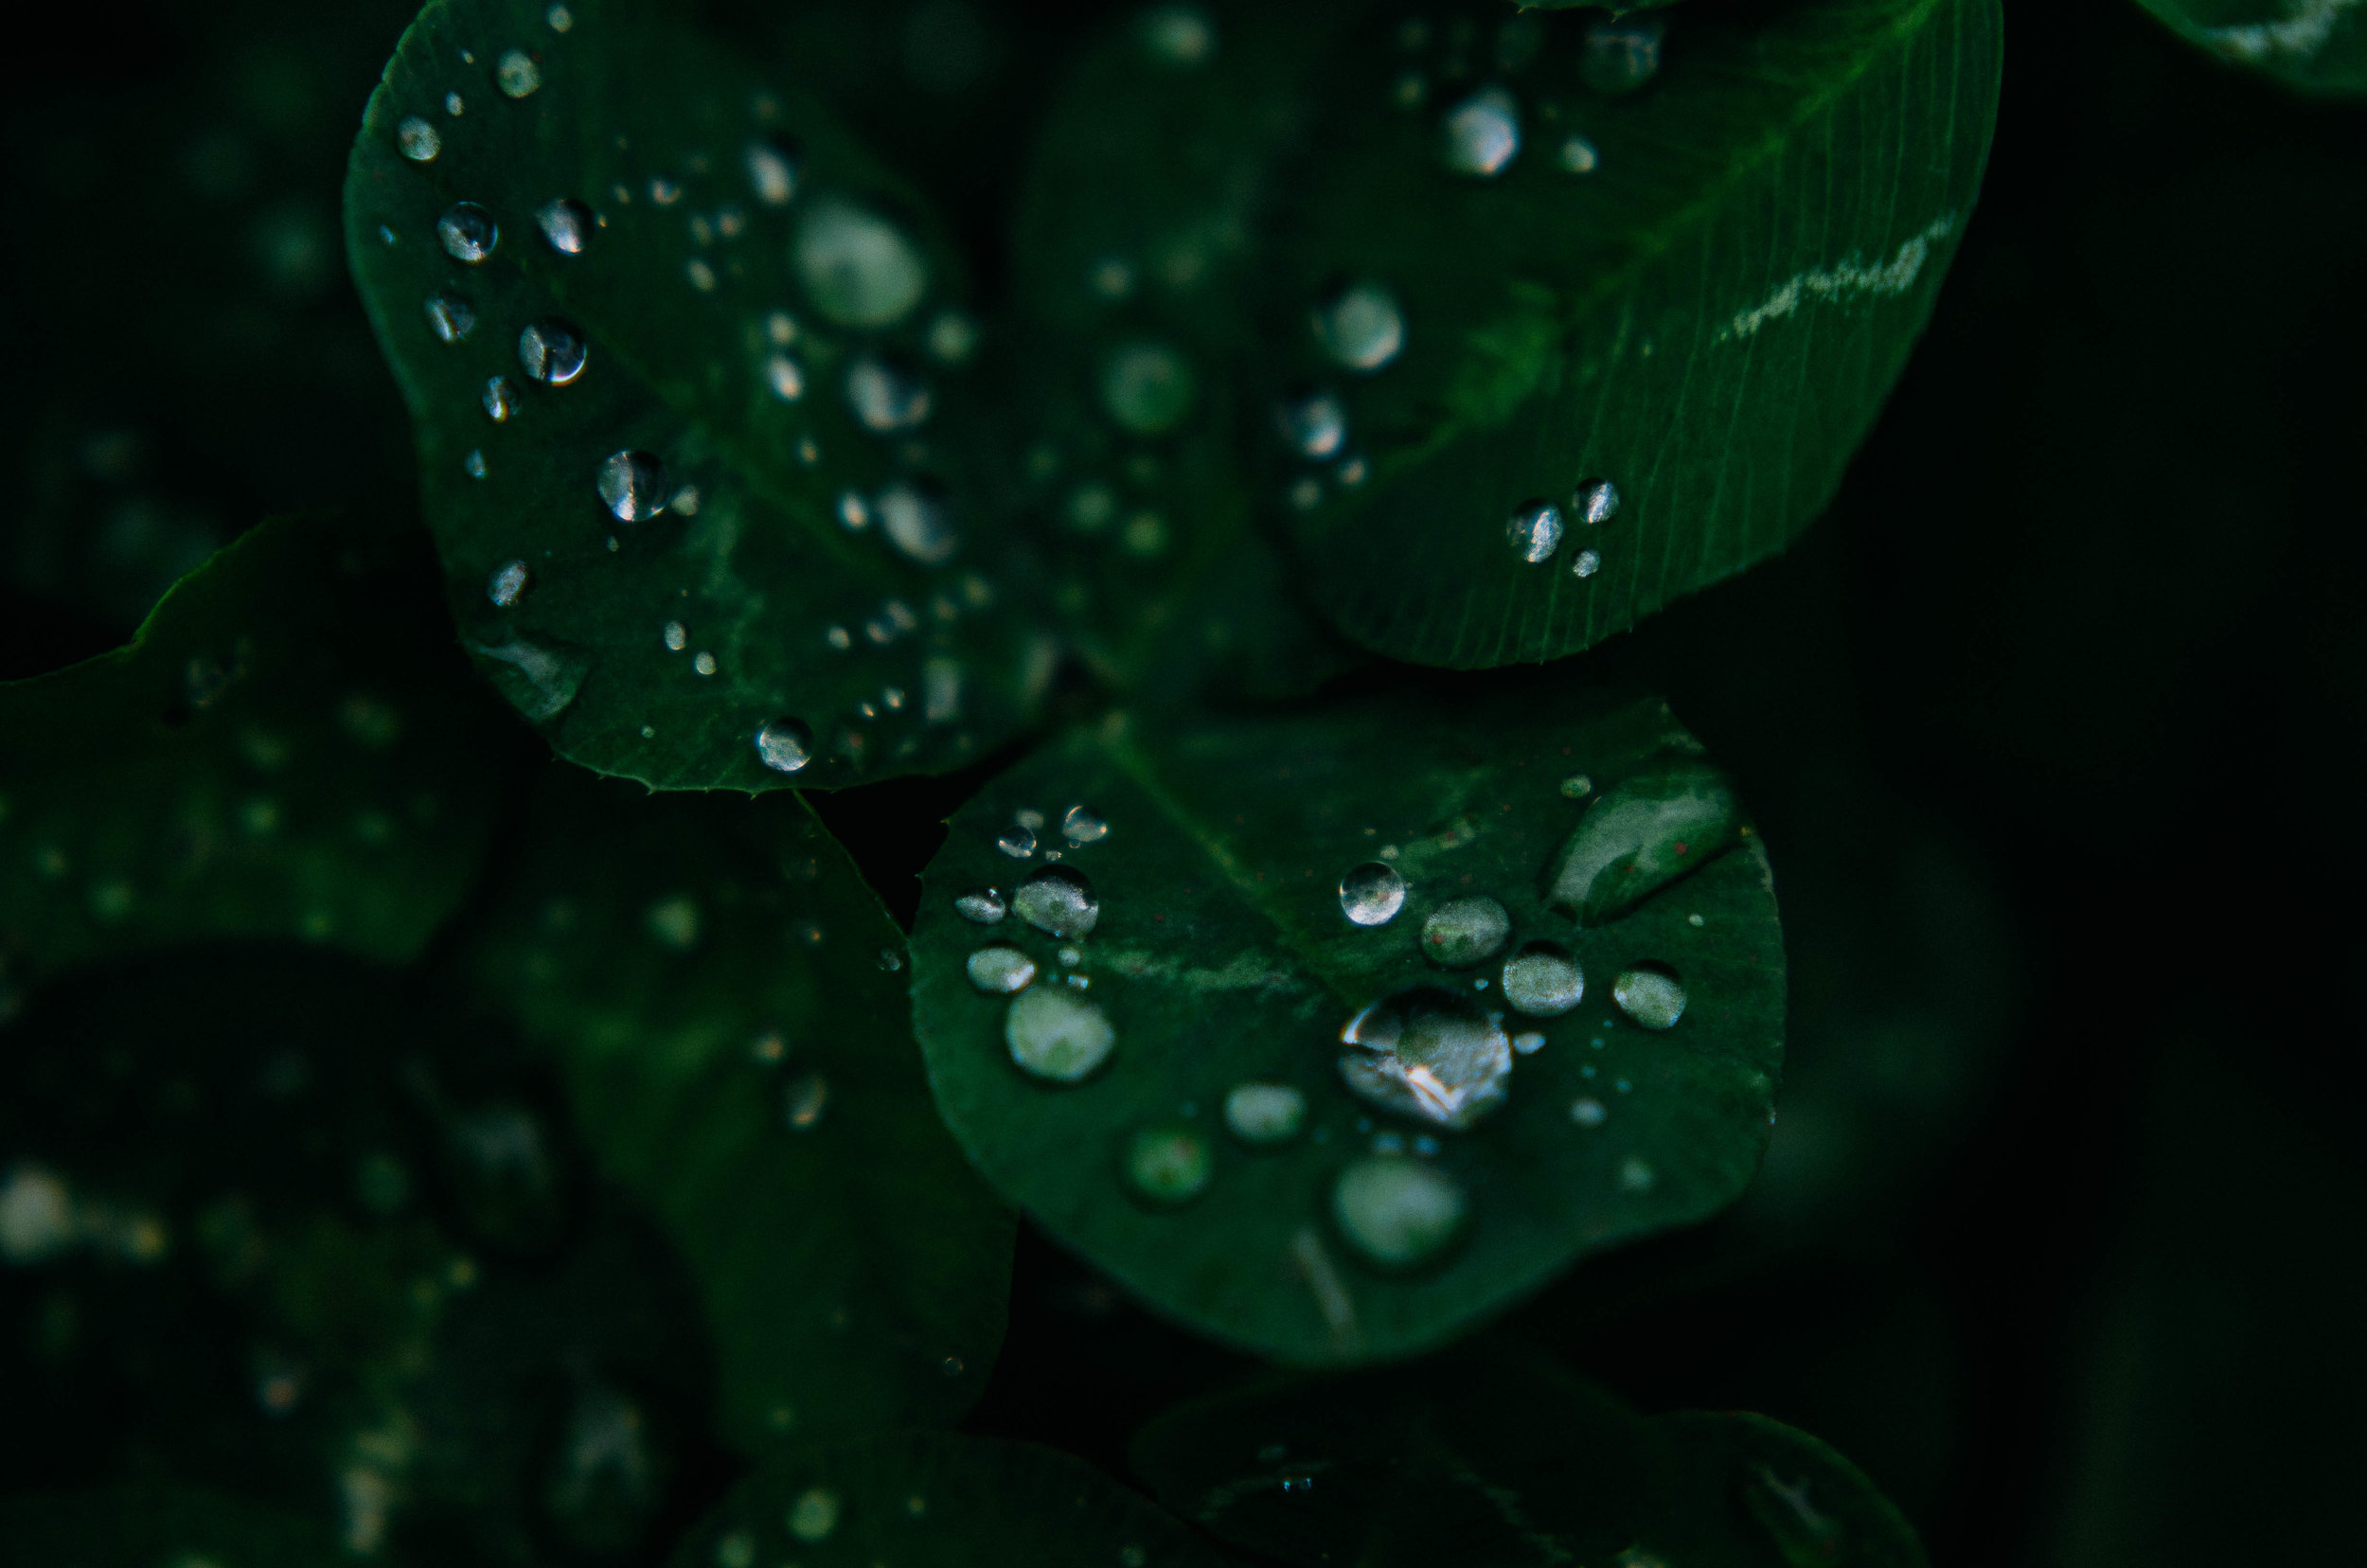 samantha whitford photography atx phototgrapher texas nature water droplets (1).jpg